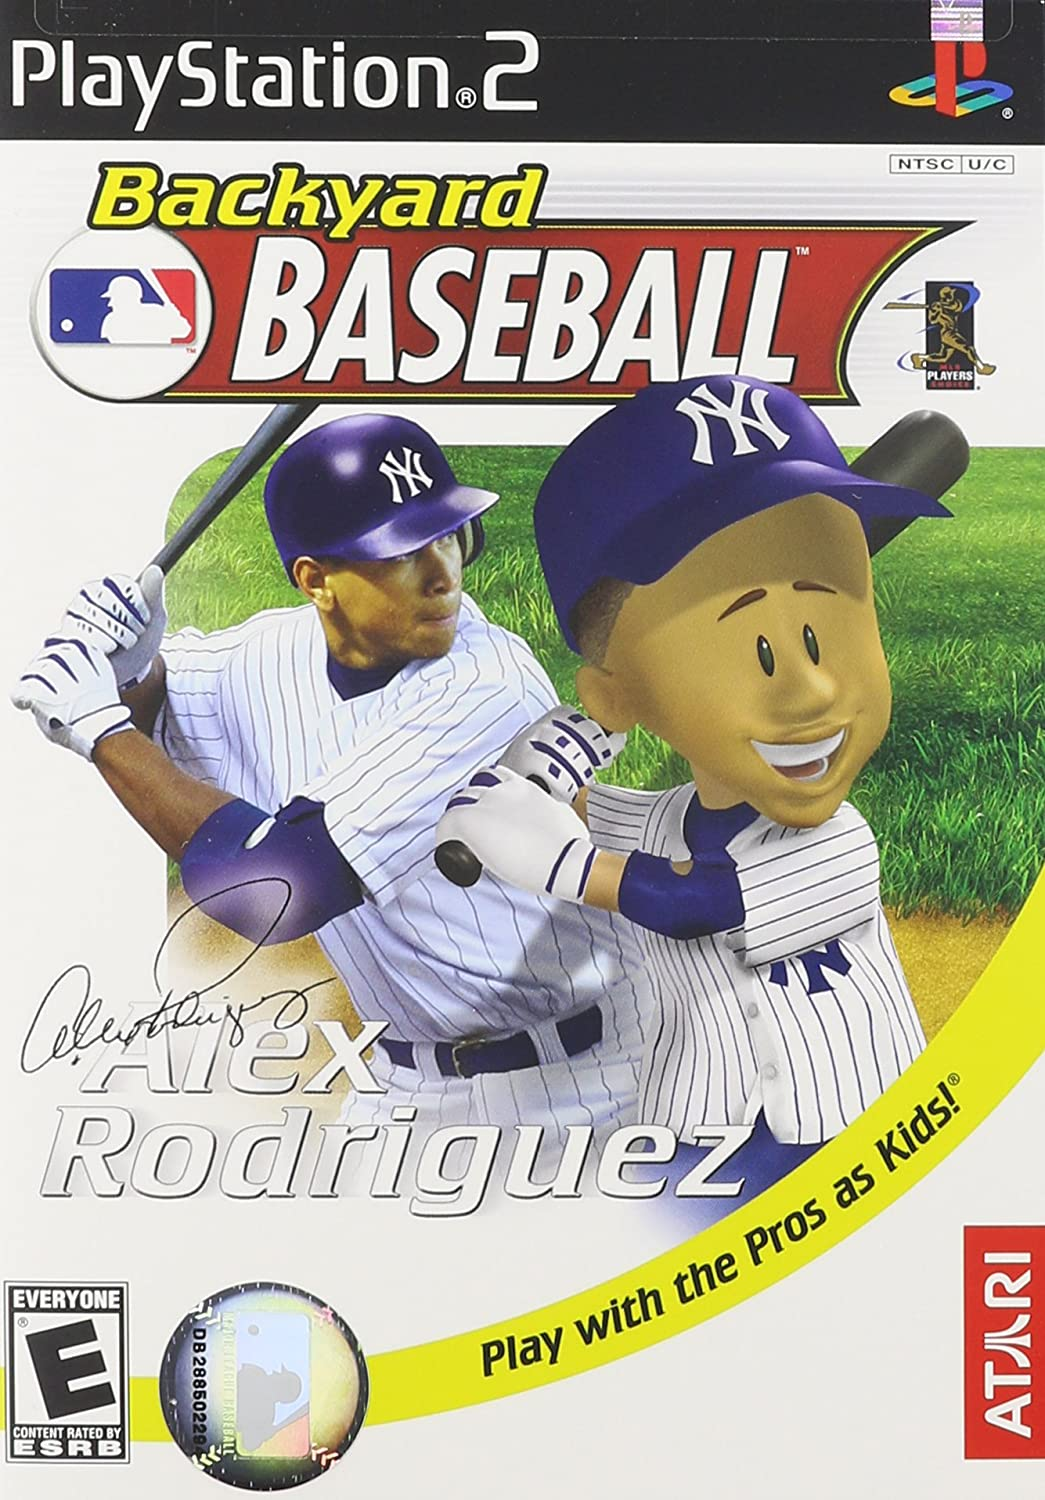 amazon com backyard baseball playstation 2 artist not provided